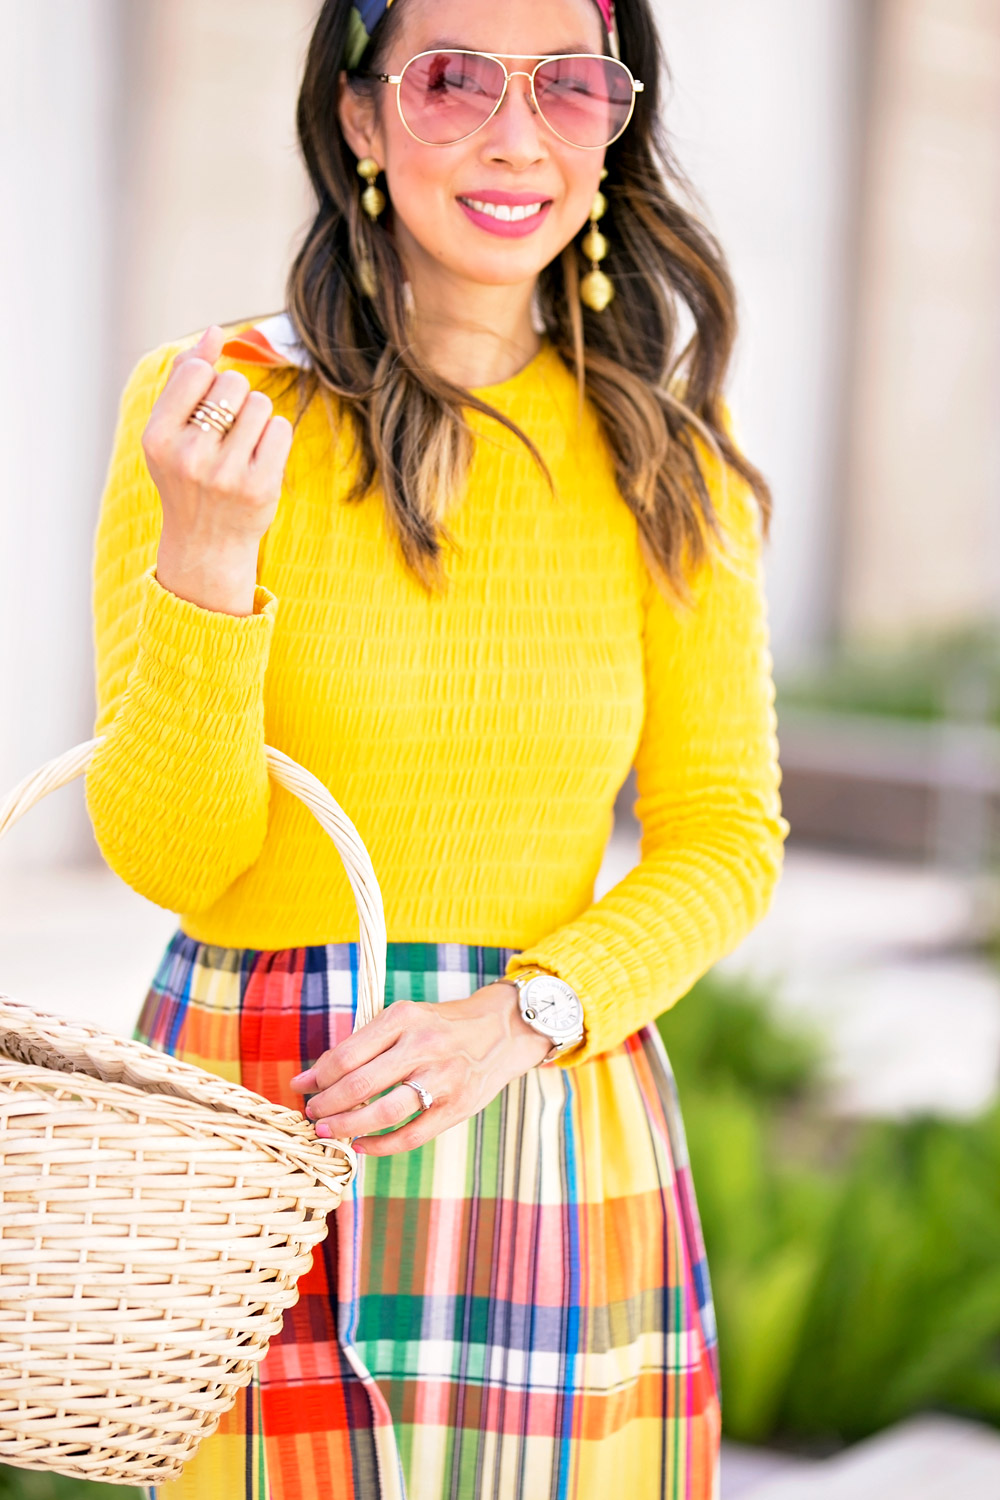 vintage yellow plaid ruffle maxi dress basket bag gold drop earring sonix rose pink aviator sunglasses